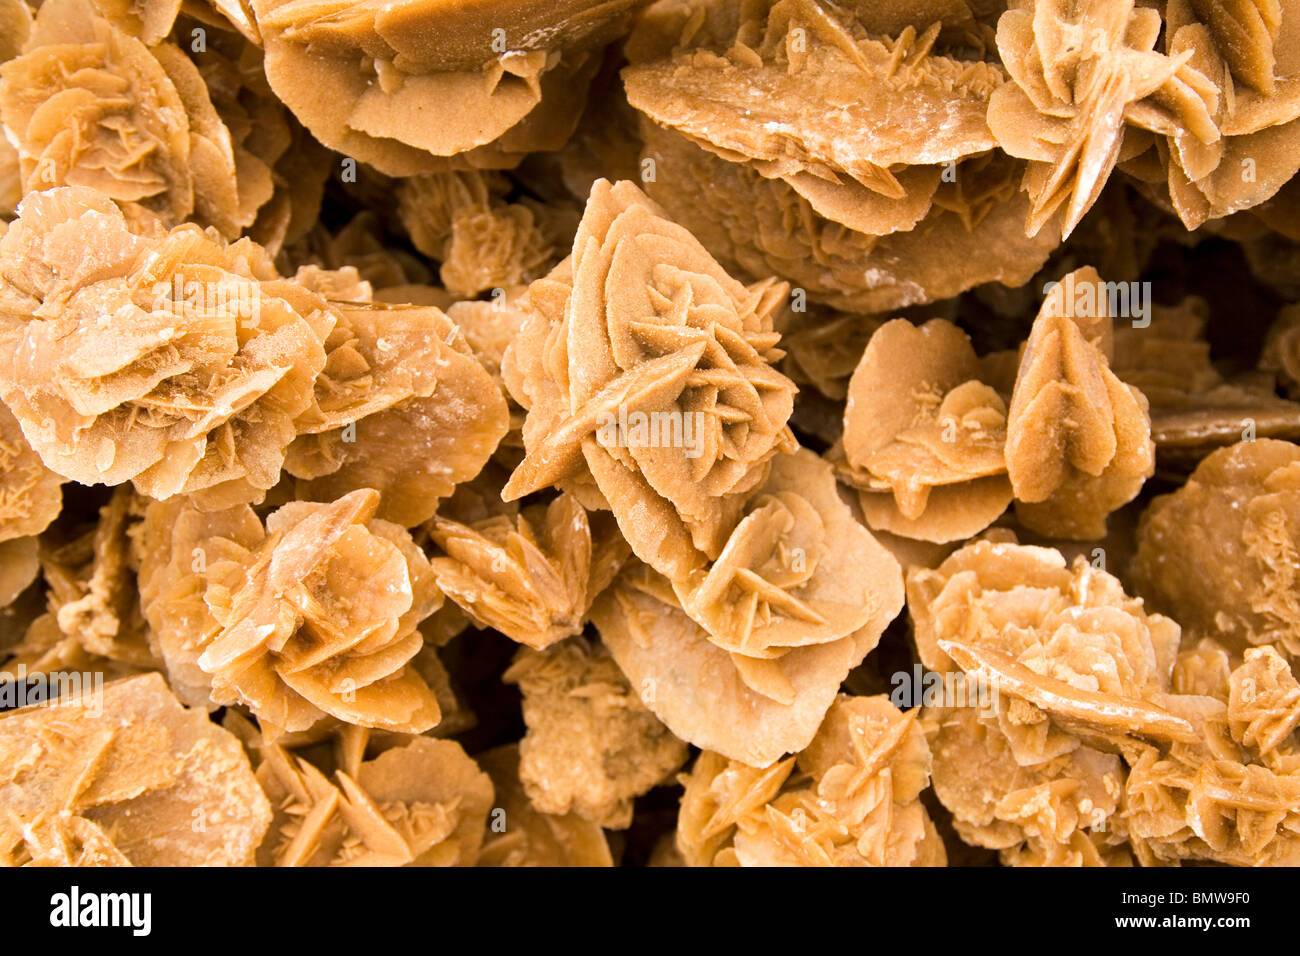 Desert Roses are offered for sale in Tunisia. - Stock Image